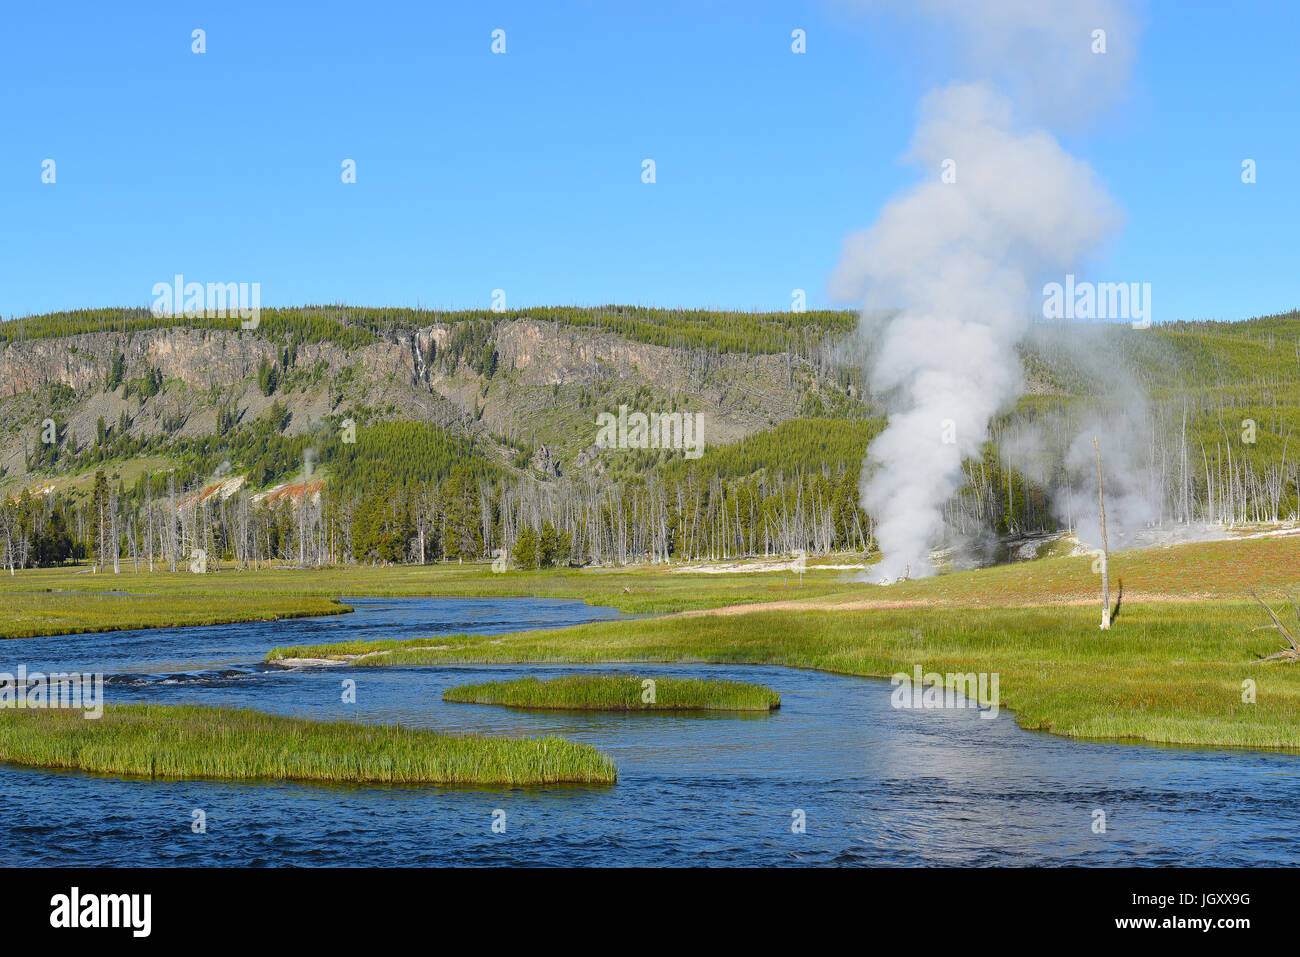 Thermal activity in Yellowstone National Park, Wyoming. Steam rises from a vent with mountains in the background - Stock Image